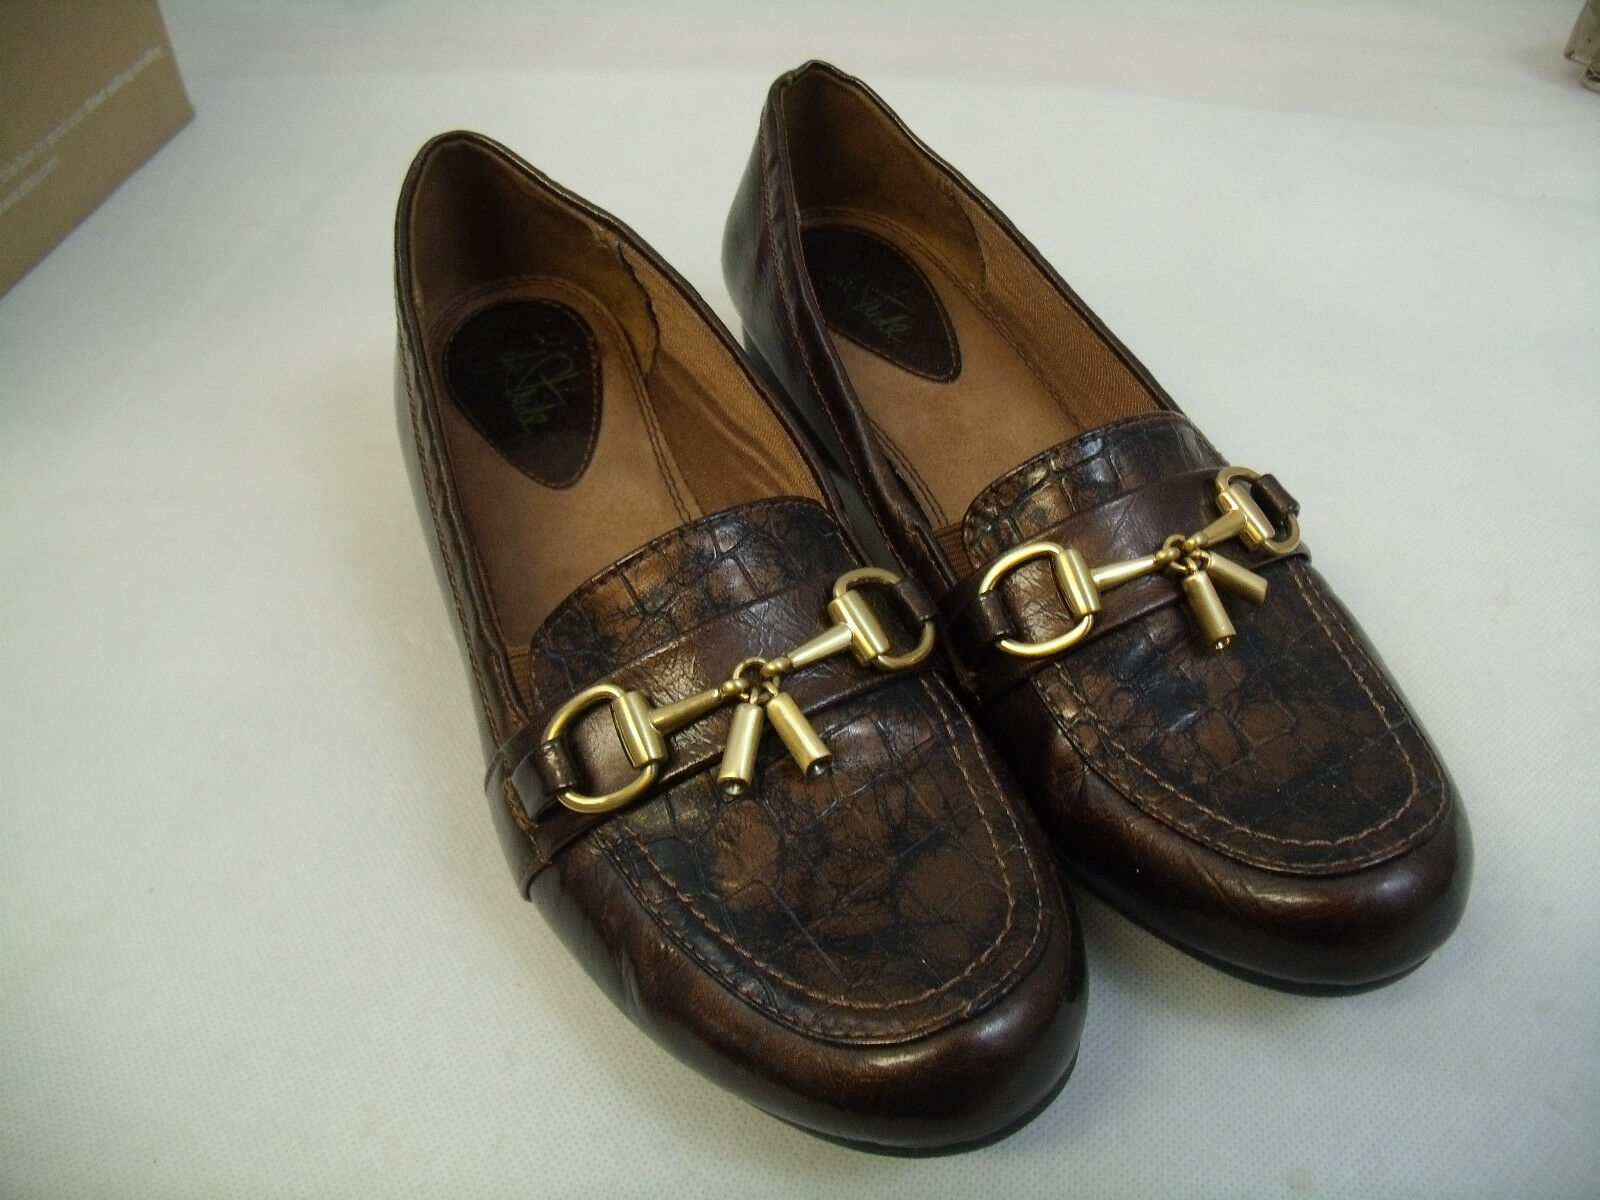 C67 LIFE STRIDE DELFINO ESPRESSO BROWN WITH METAL 8M TASSEL LOAFERS  SIZE 8M METAL  EUC 0b80be